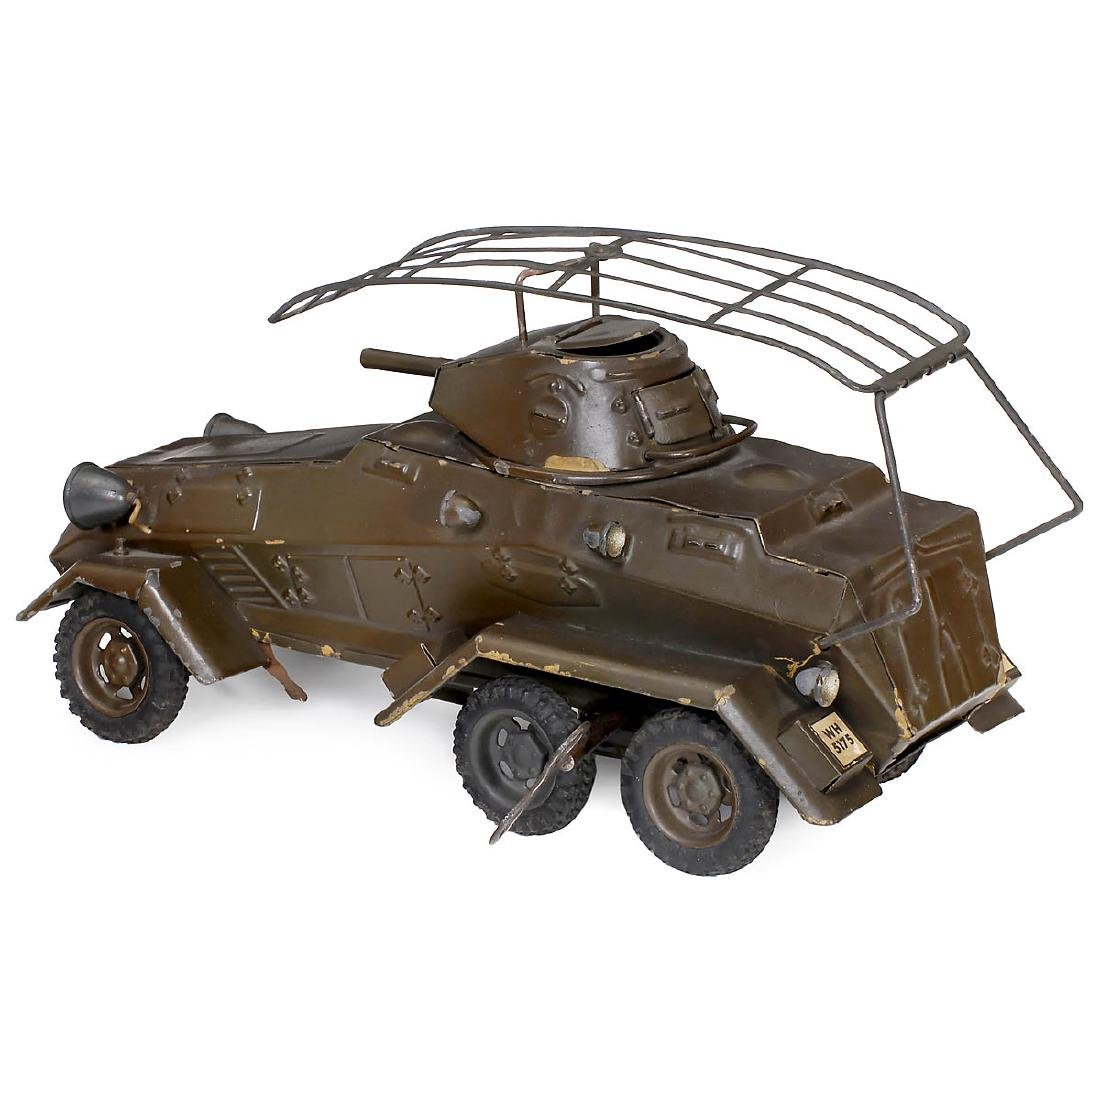 Lineol Armored Scout Car WH-5175, c. 1935 - 2